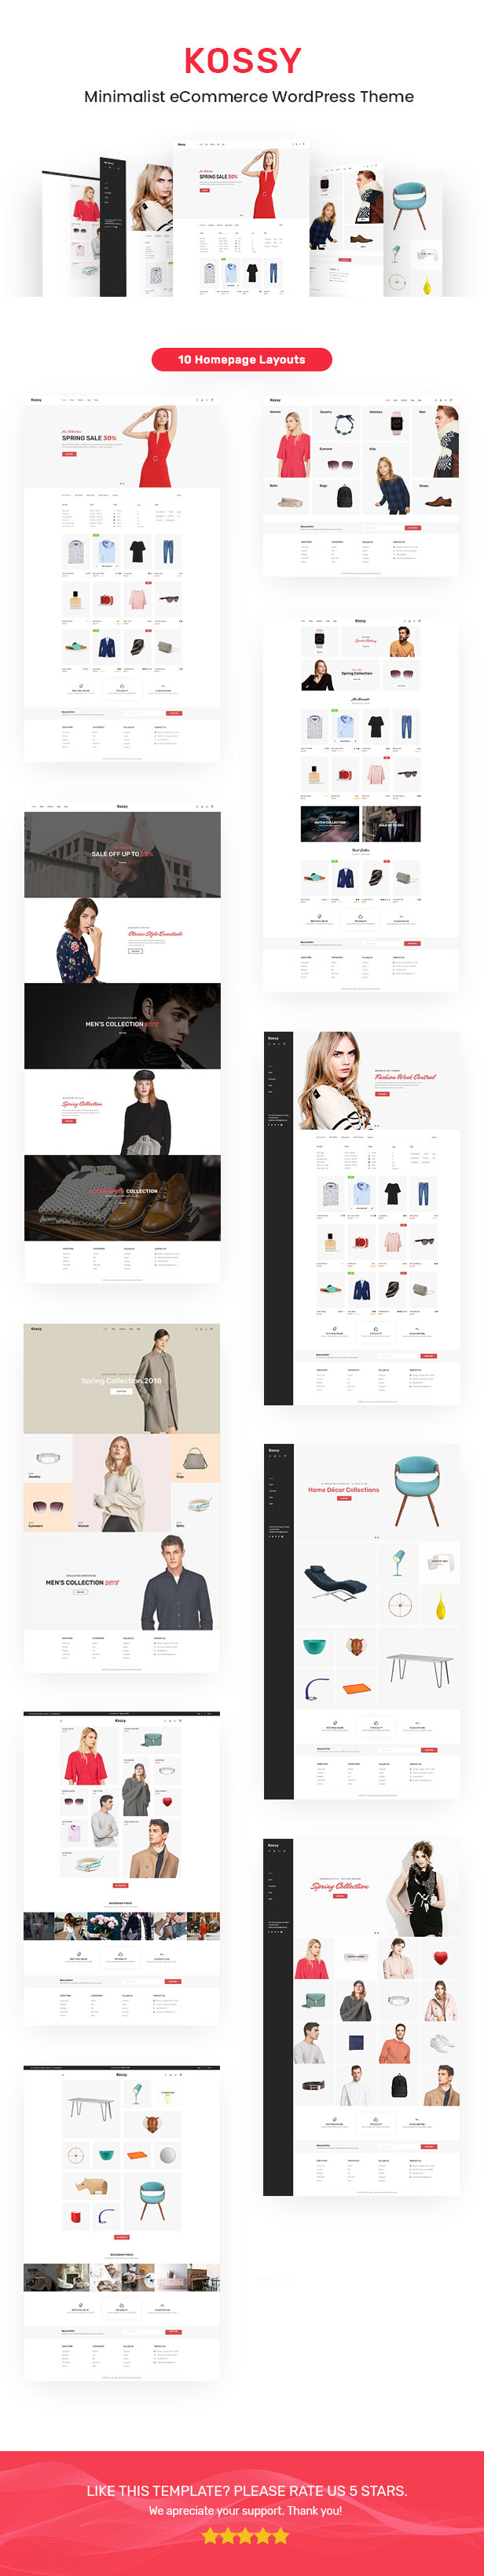 Kossy - Minimalist eCommerce WordPress Theme - 1